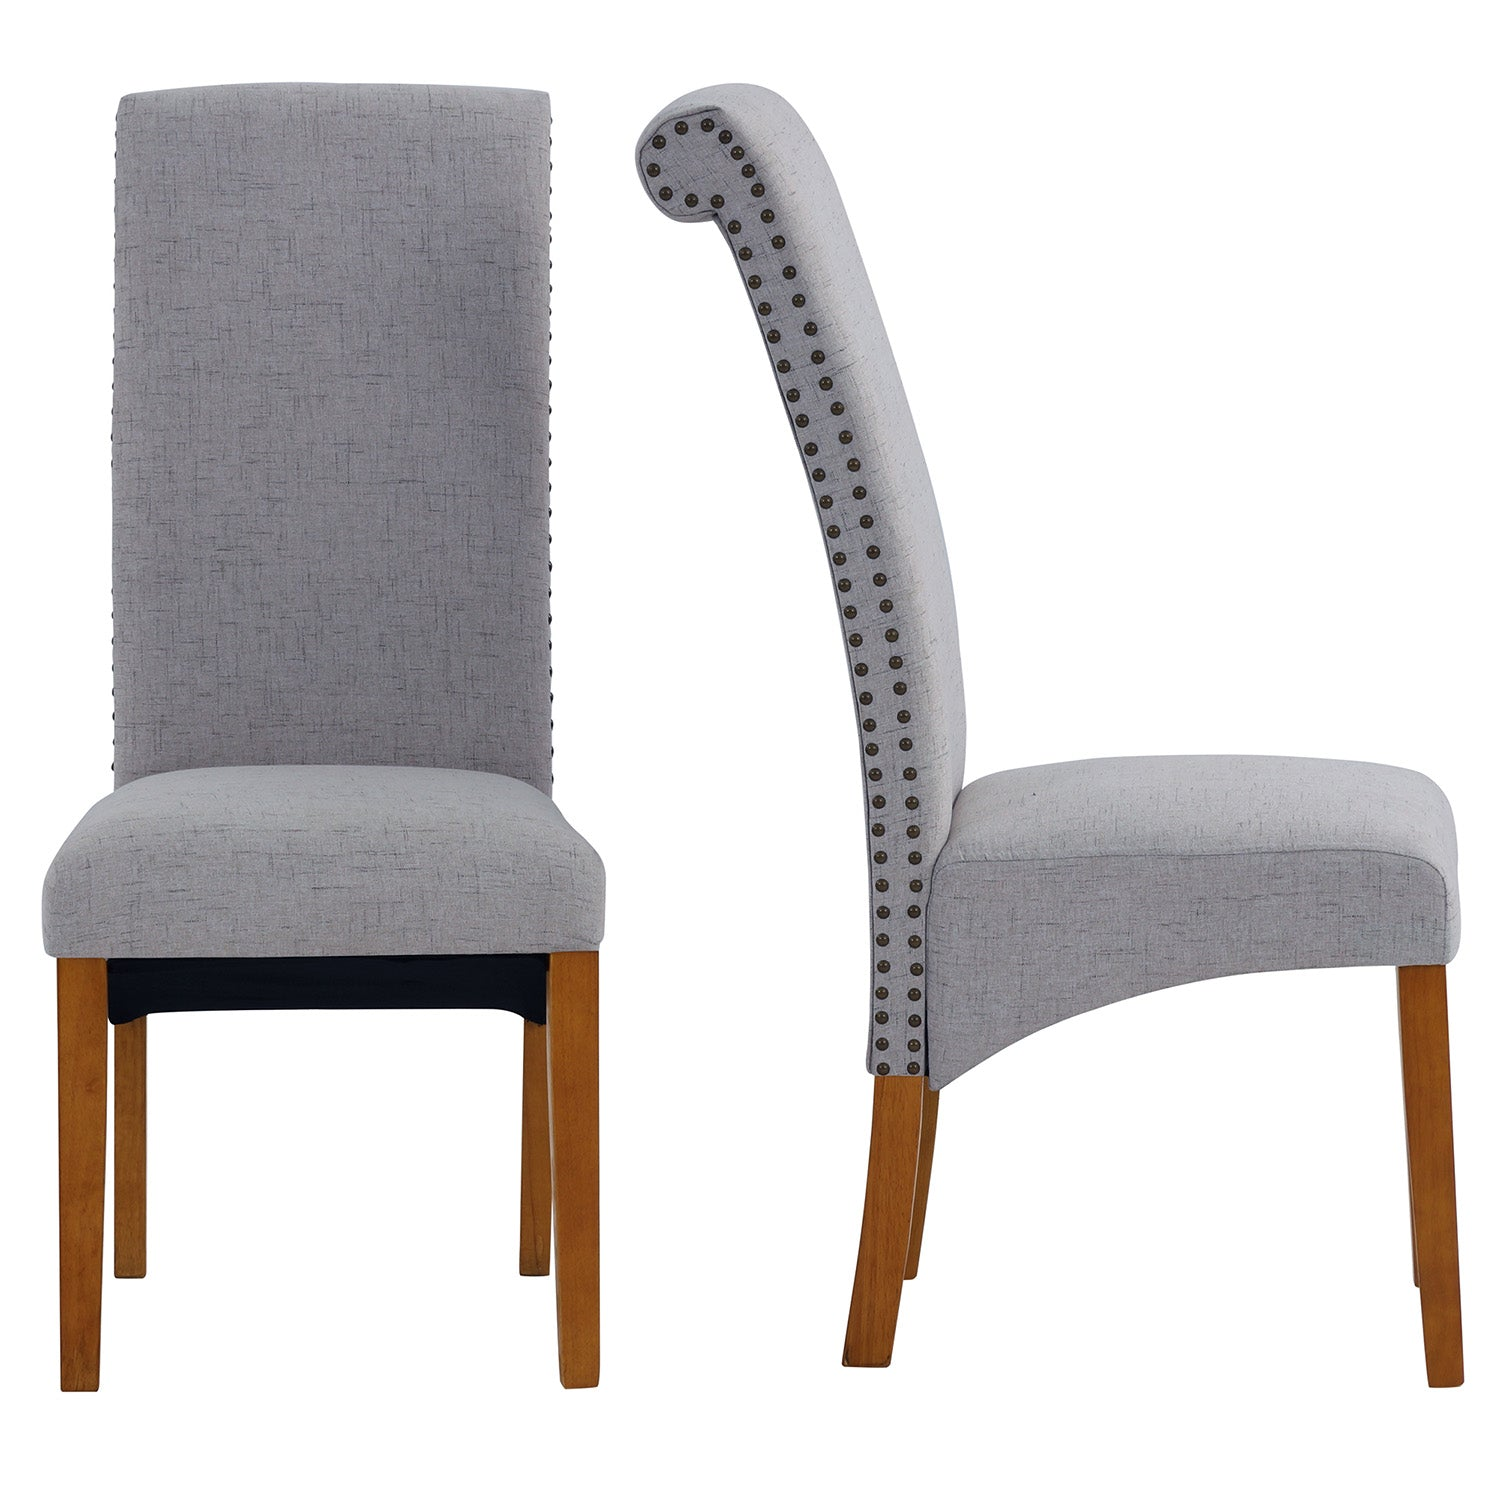 Slate Gray Dining Chair Set Fabric Padded Side Chair with Solid Wood Legs Nailed Trim Living Room BH486200